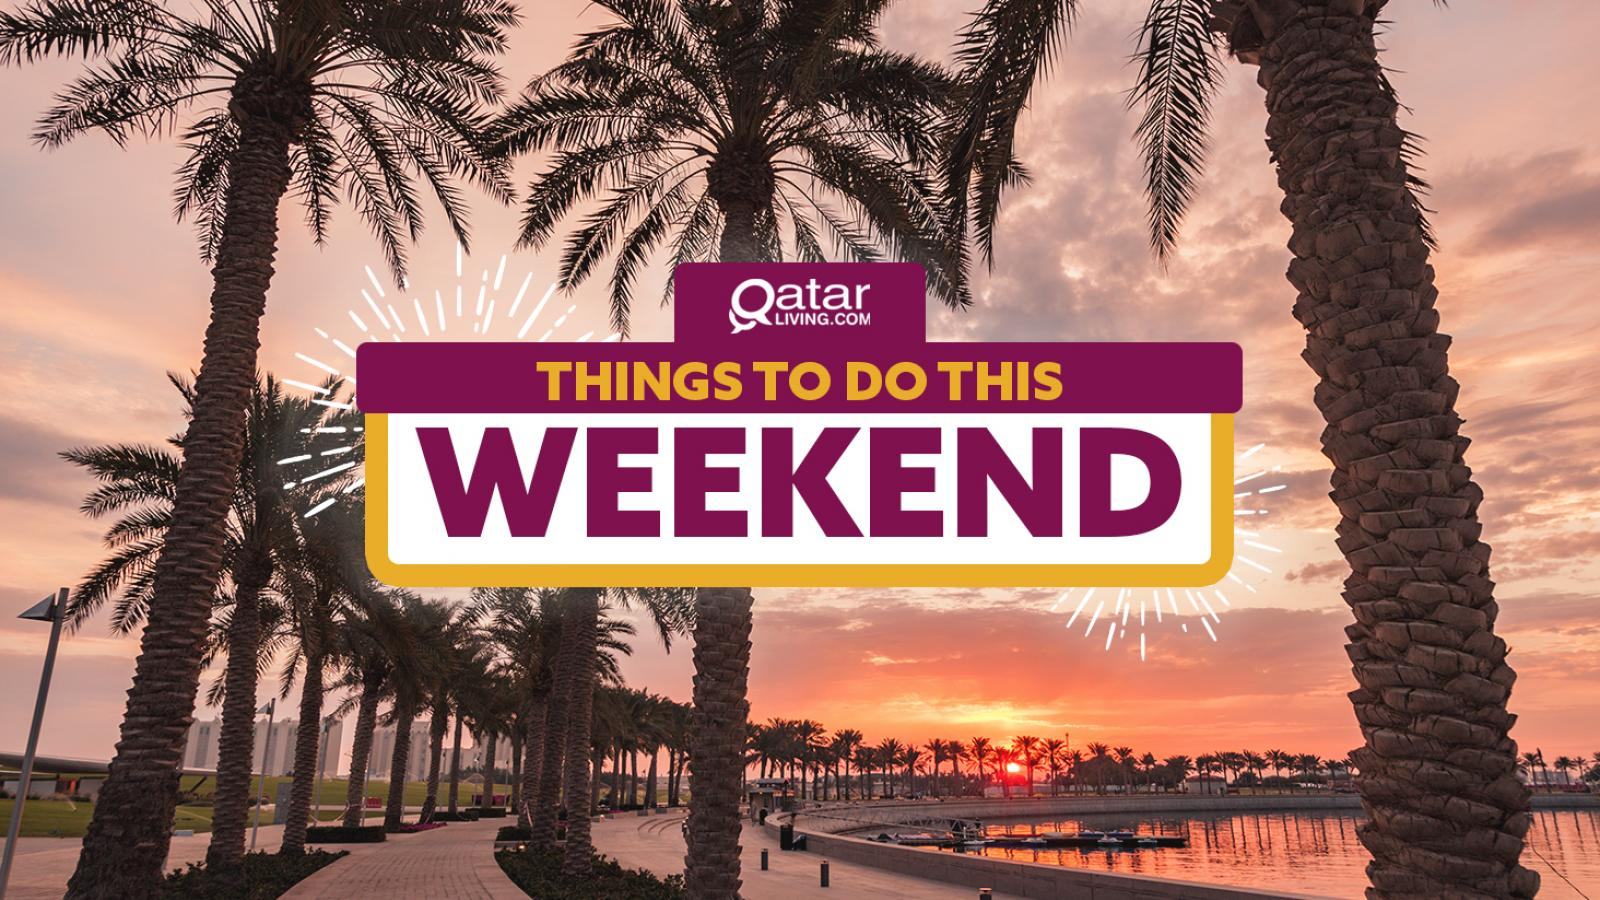 Things to do in Qatar this weekend: January 23-25